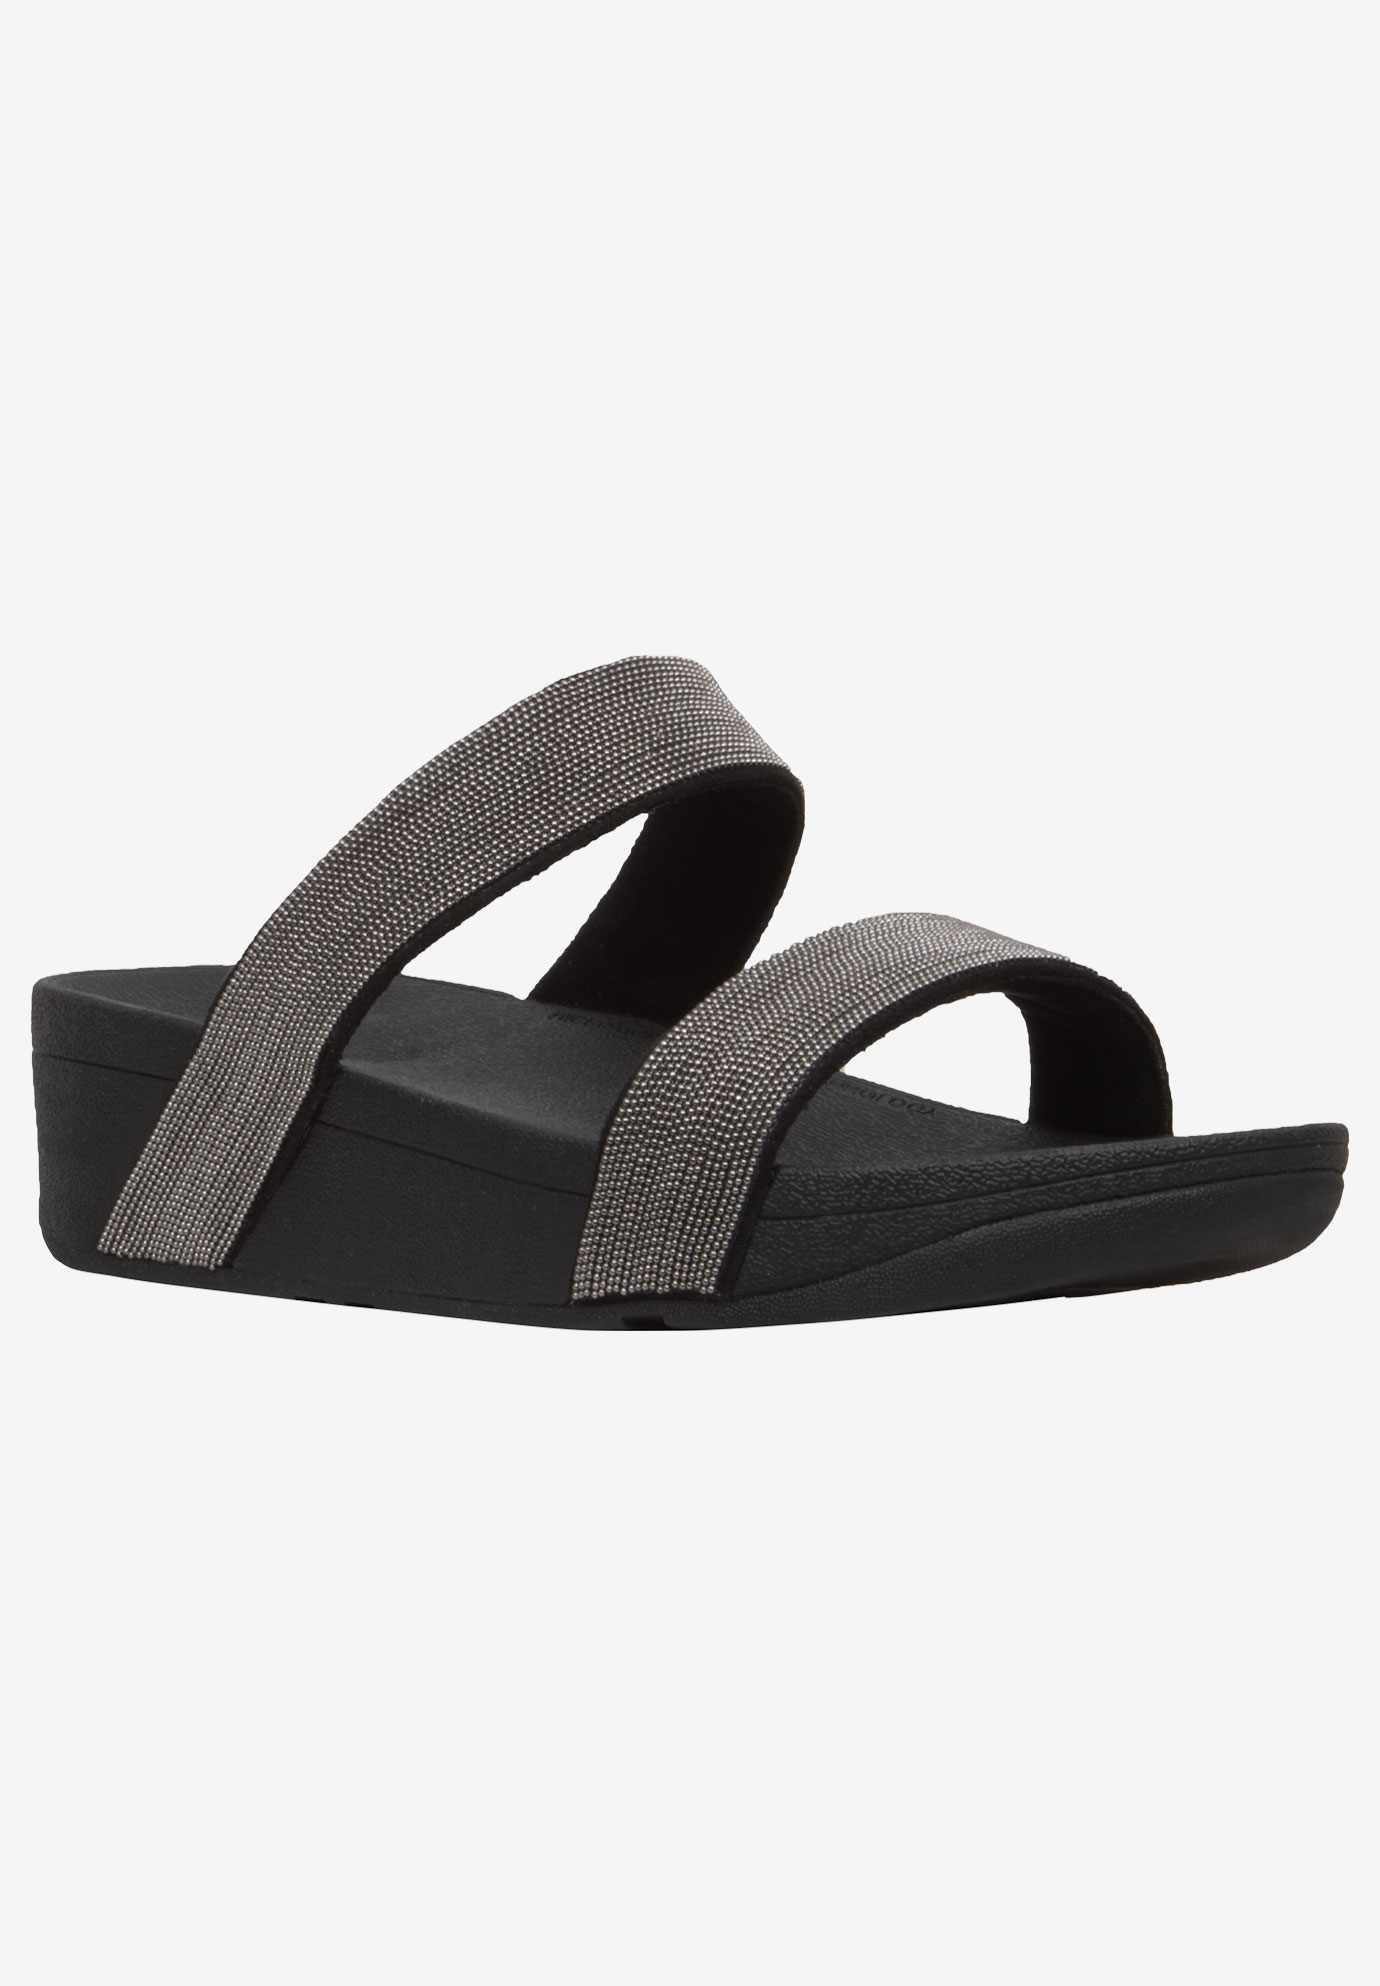 Lottie Shimmerish Slide Sandal by FitFlop,